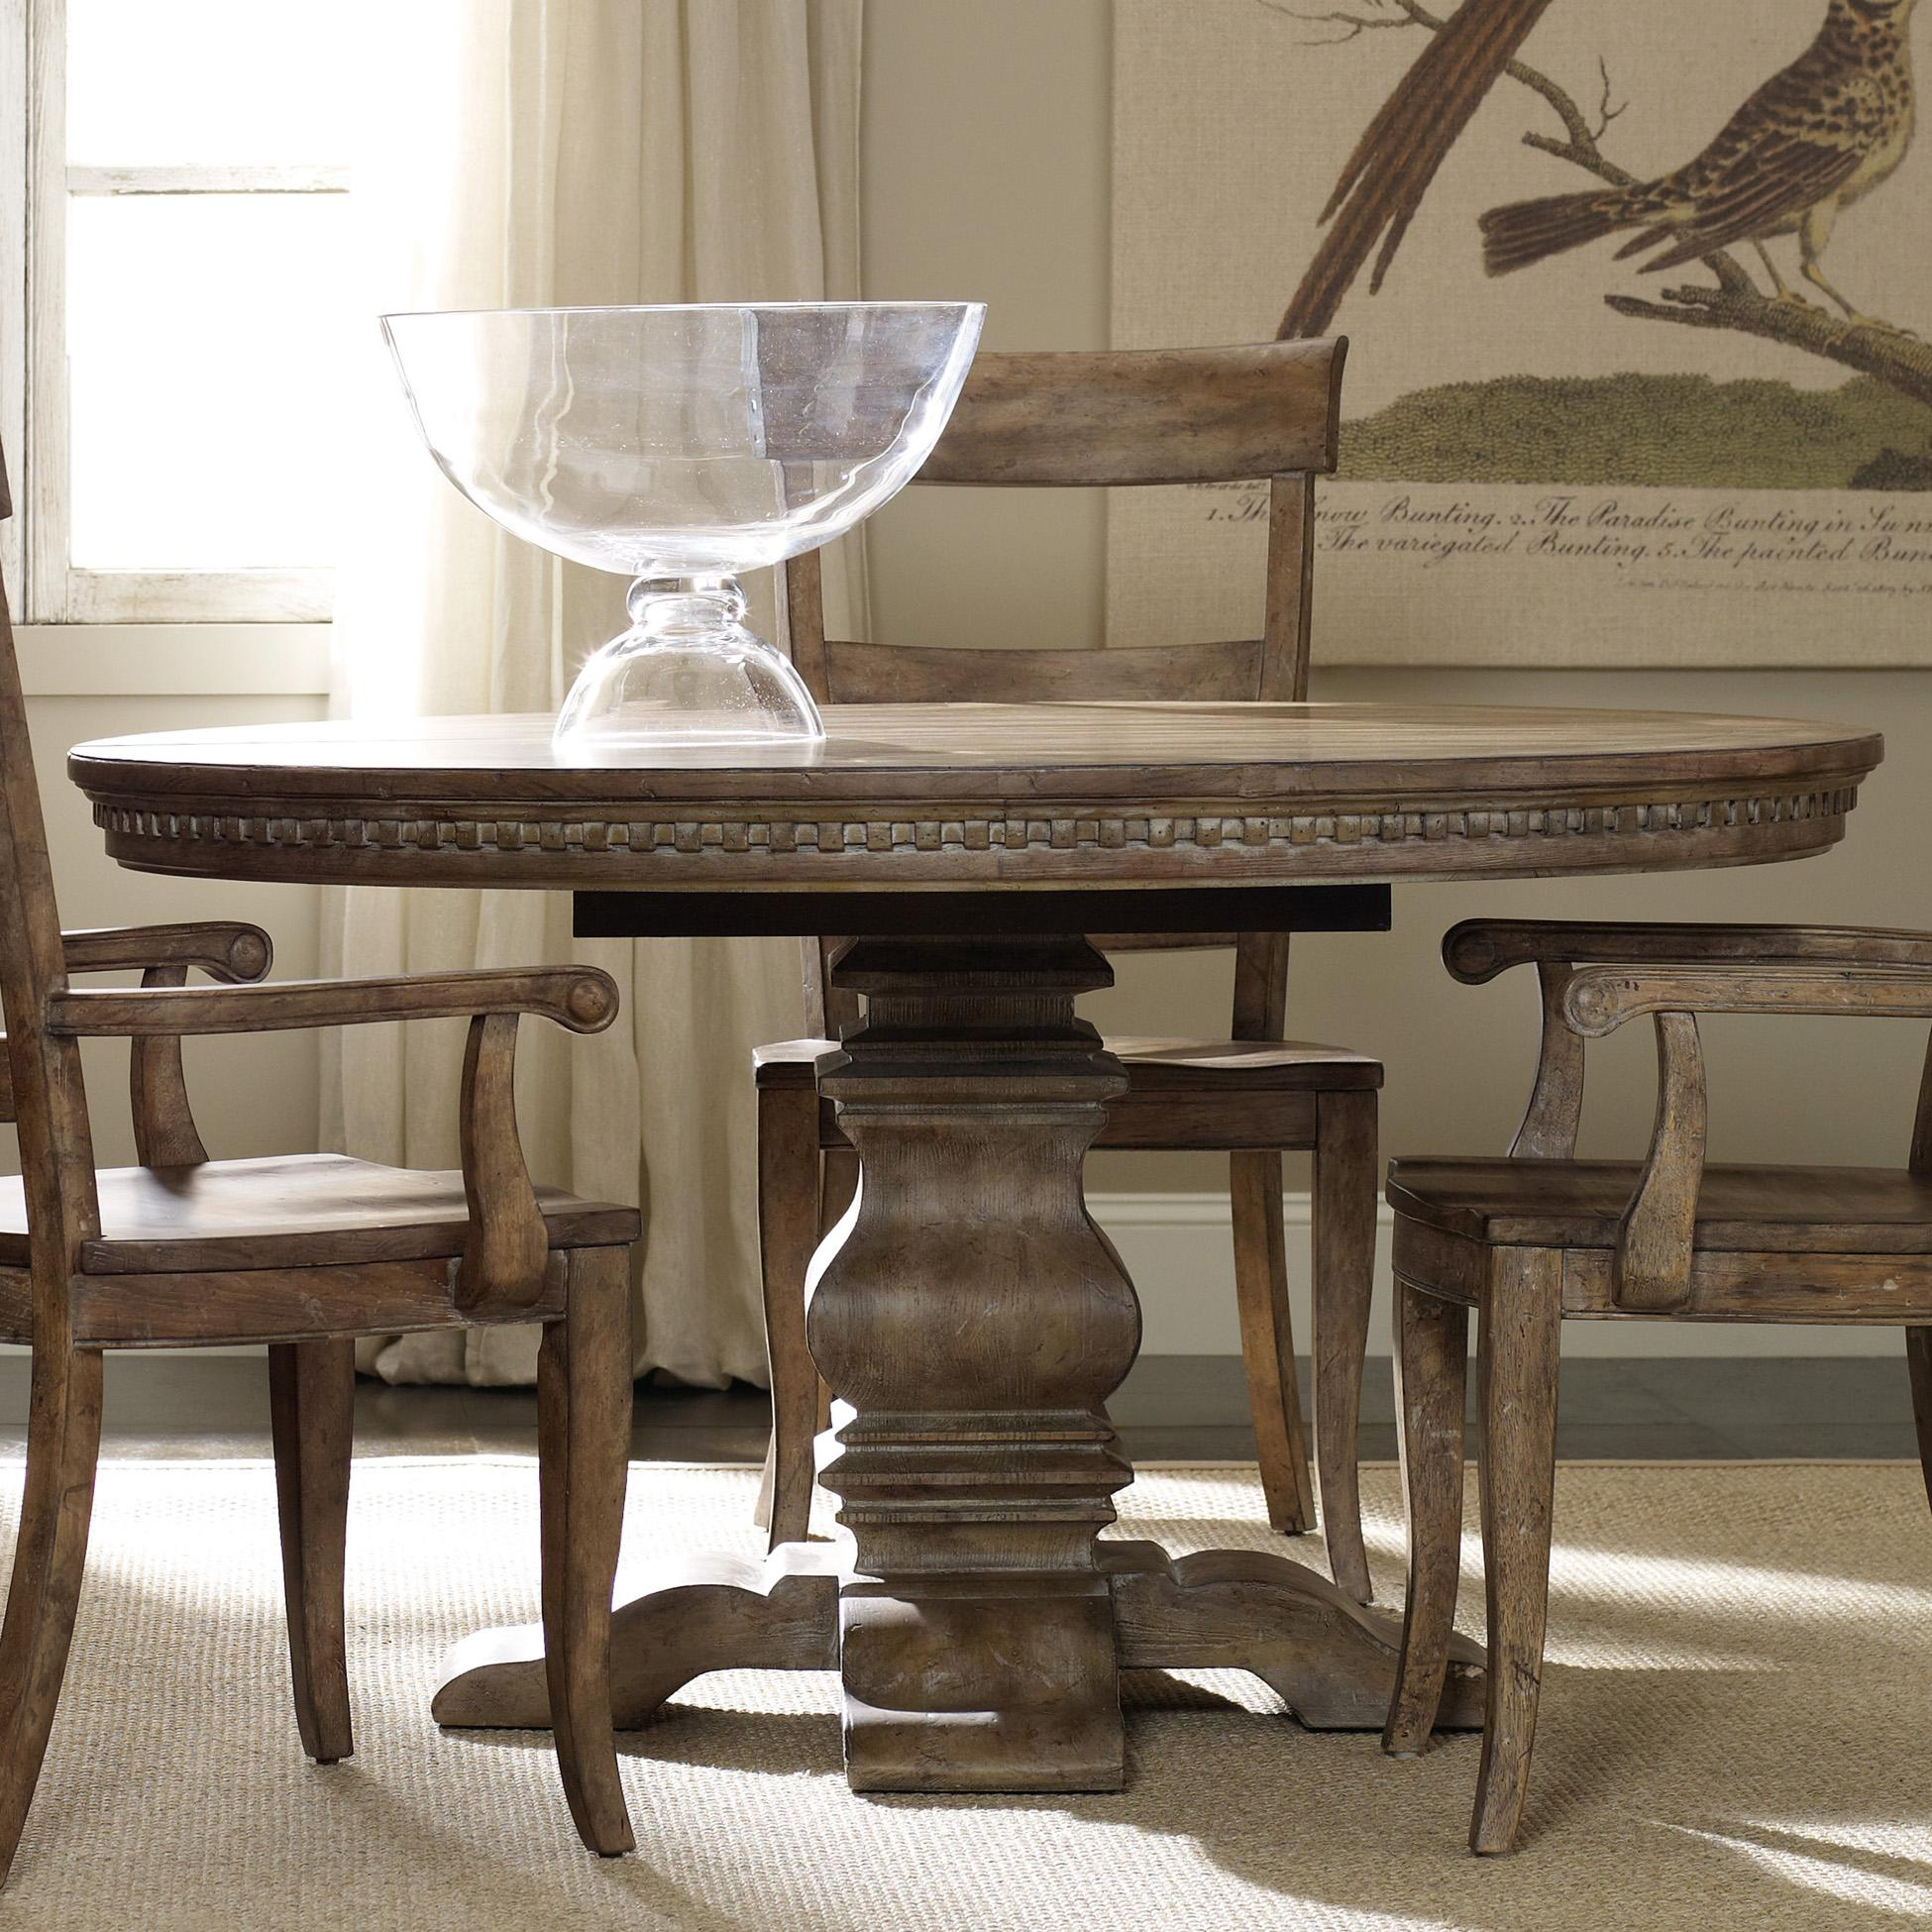 Hamilton home sorella pedestal dining table item number 5107 75203